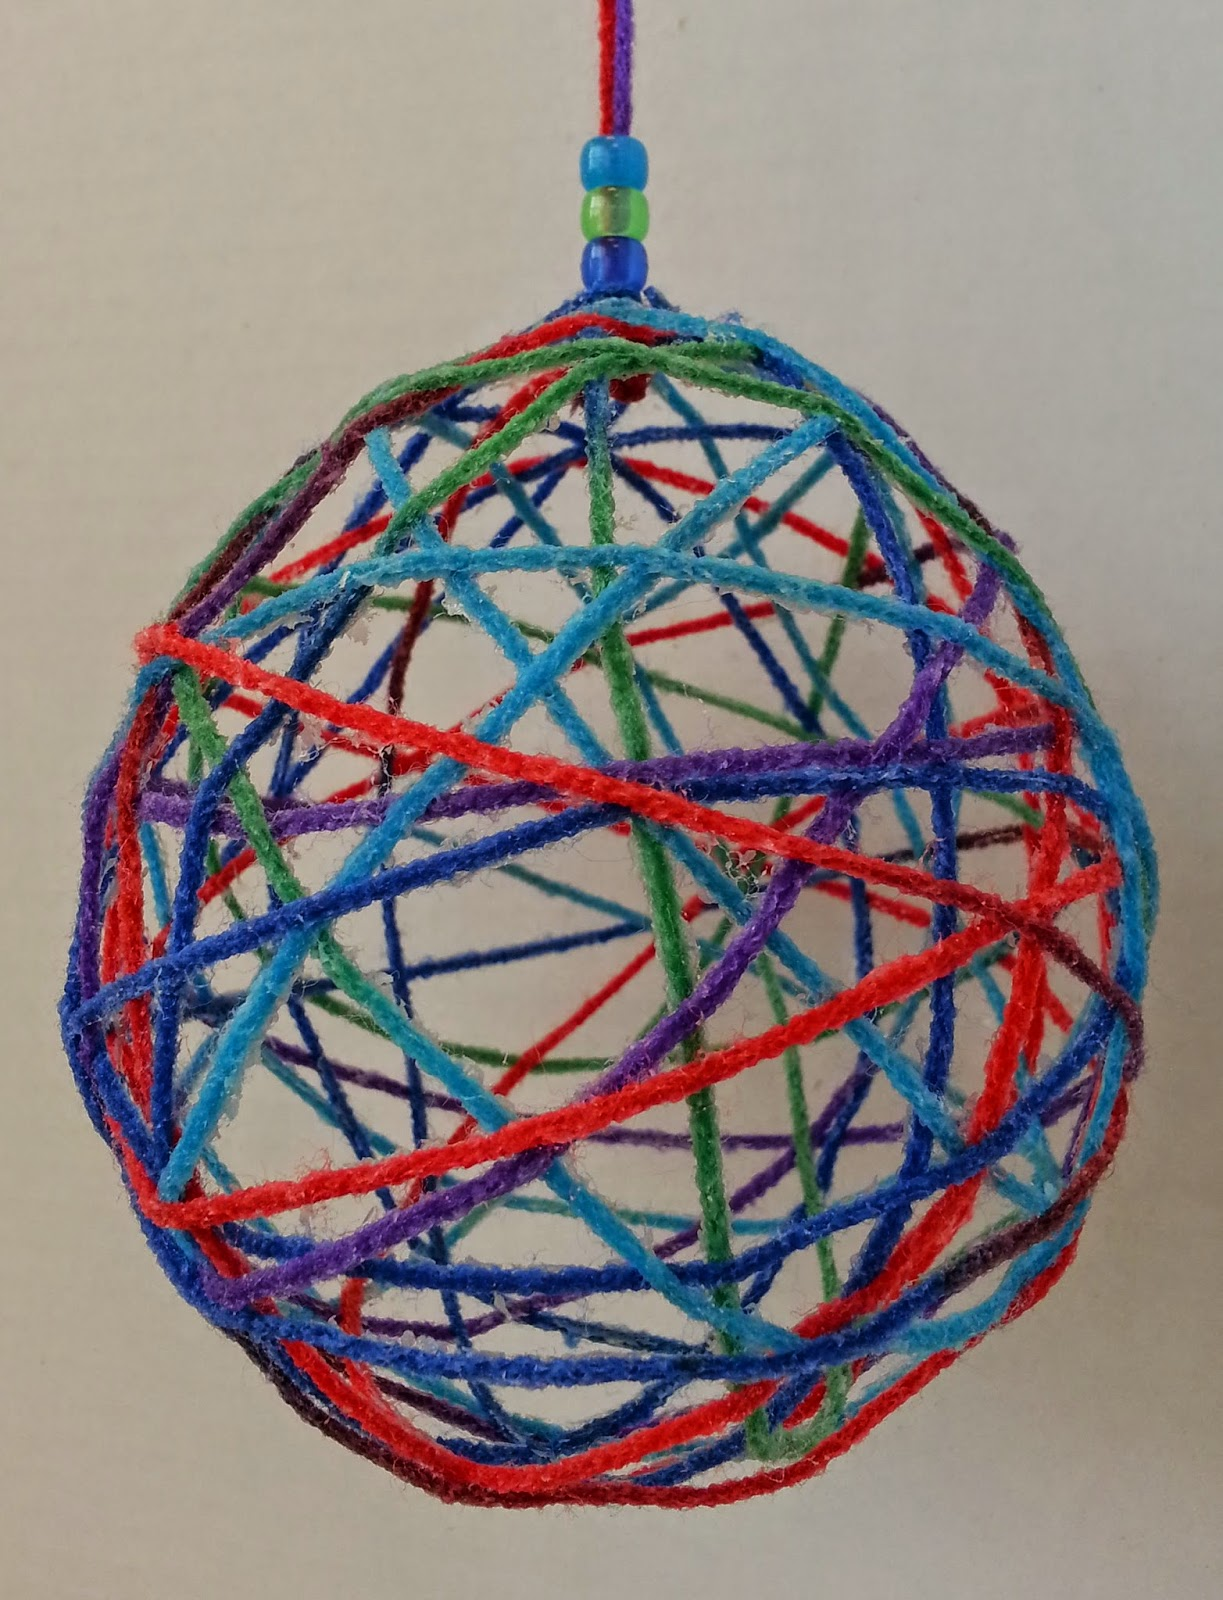 DIY Hanging Fiber Ball - Photo courtesy of Hands On Crafts for Kids.